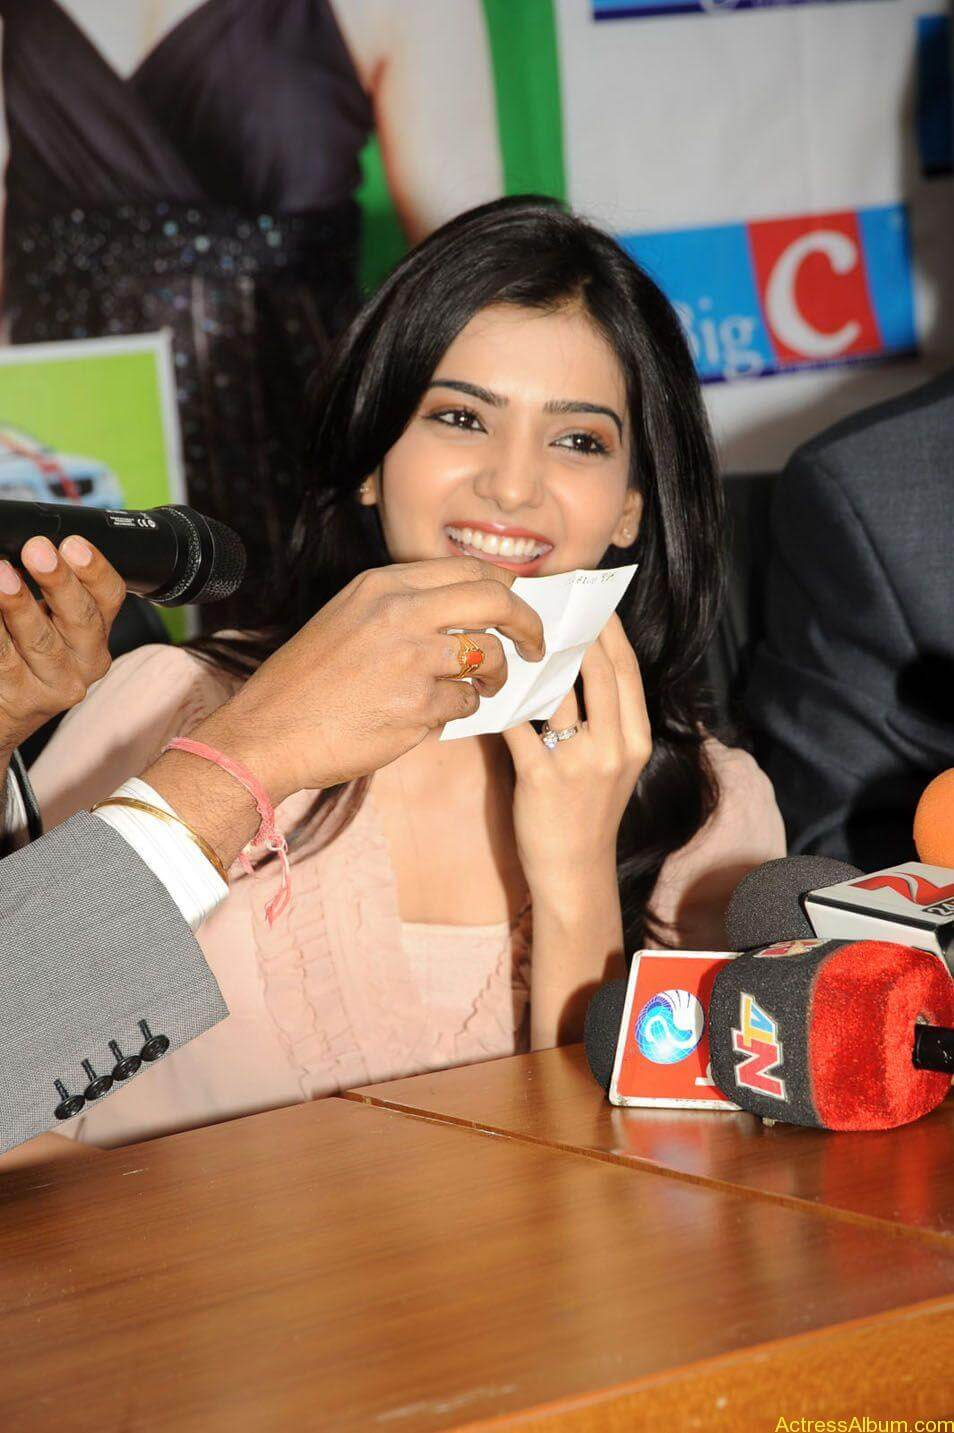 Samantha stills at big c rojuko laksha contest (6)